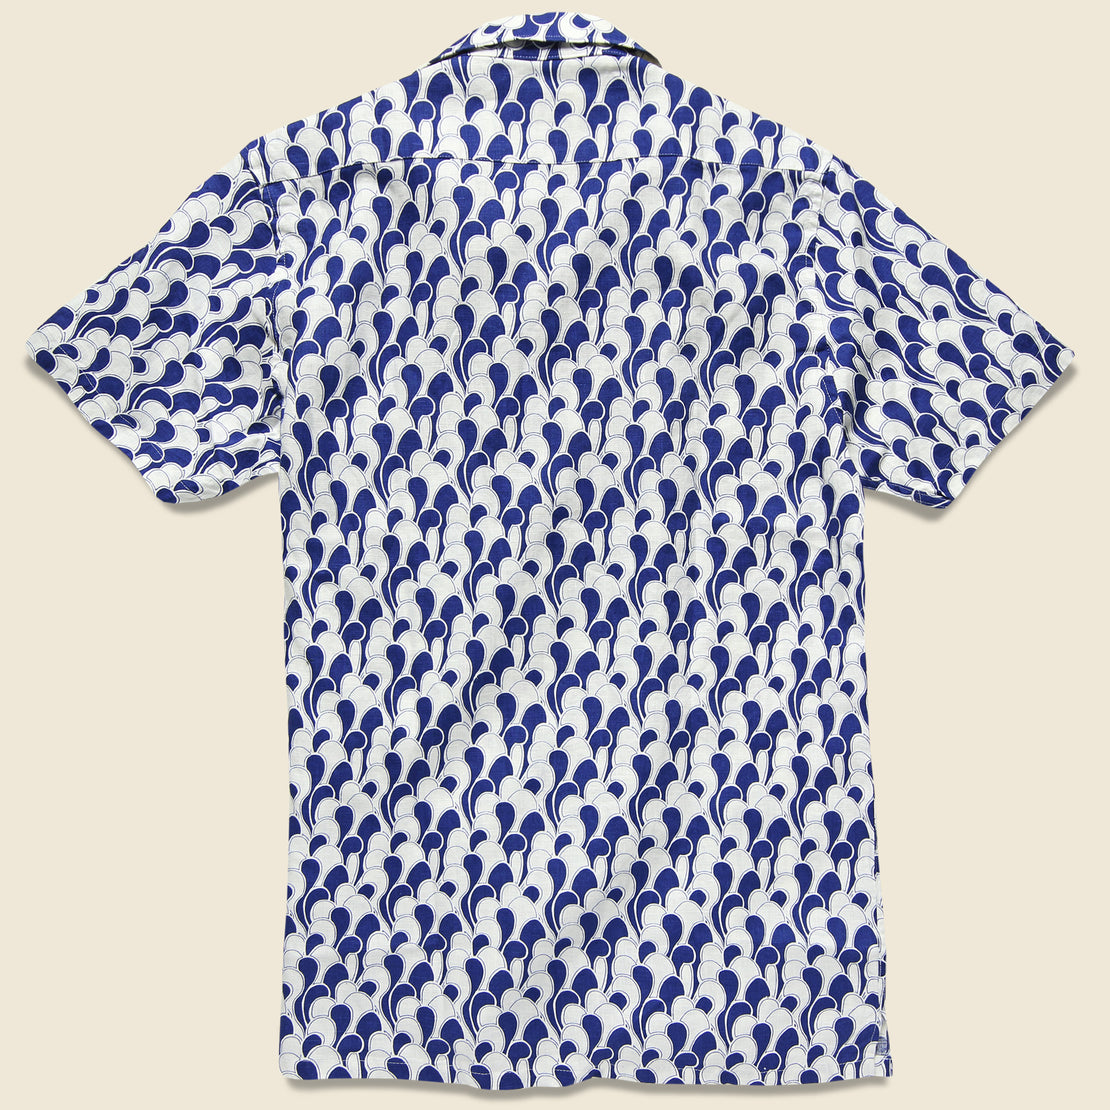 Selleck Shirt - Waves